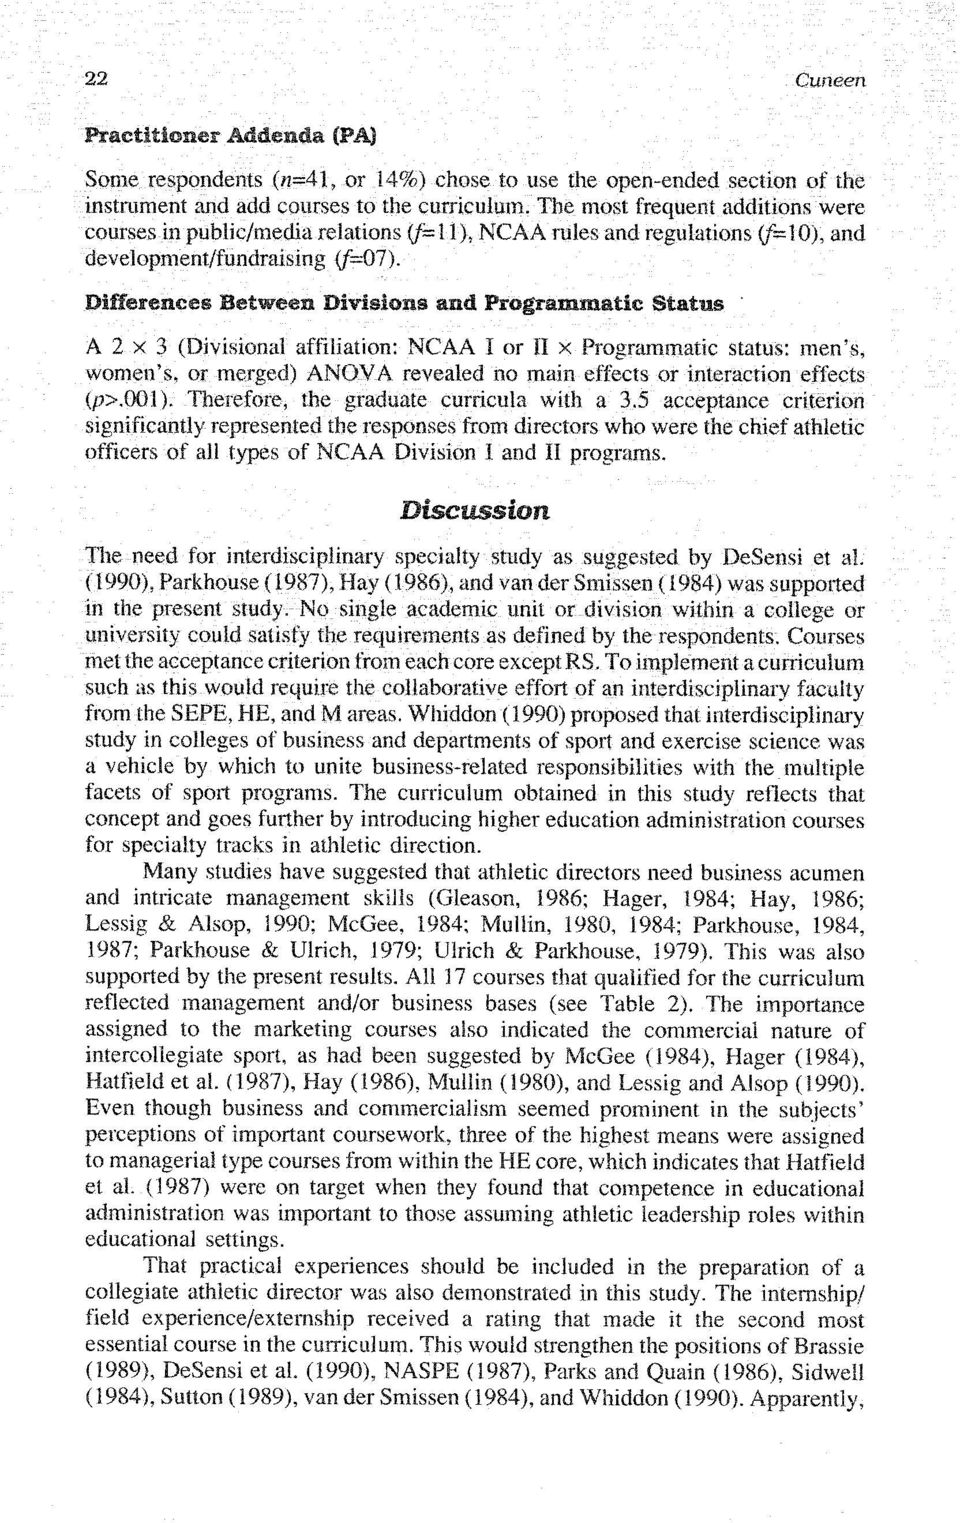 5 acceptance criterion significantly represented the responses from directors who were the chief athletic officers of all types of NCAA Division I and I1 programs.